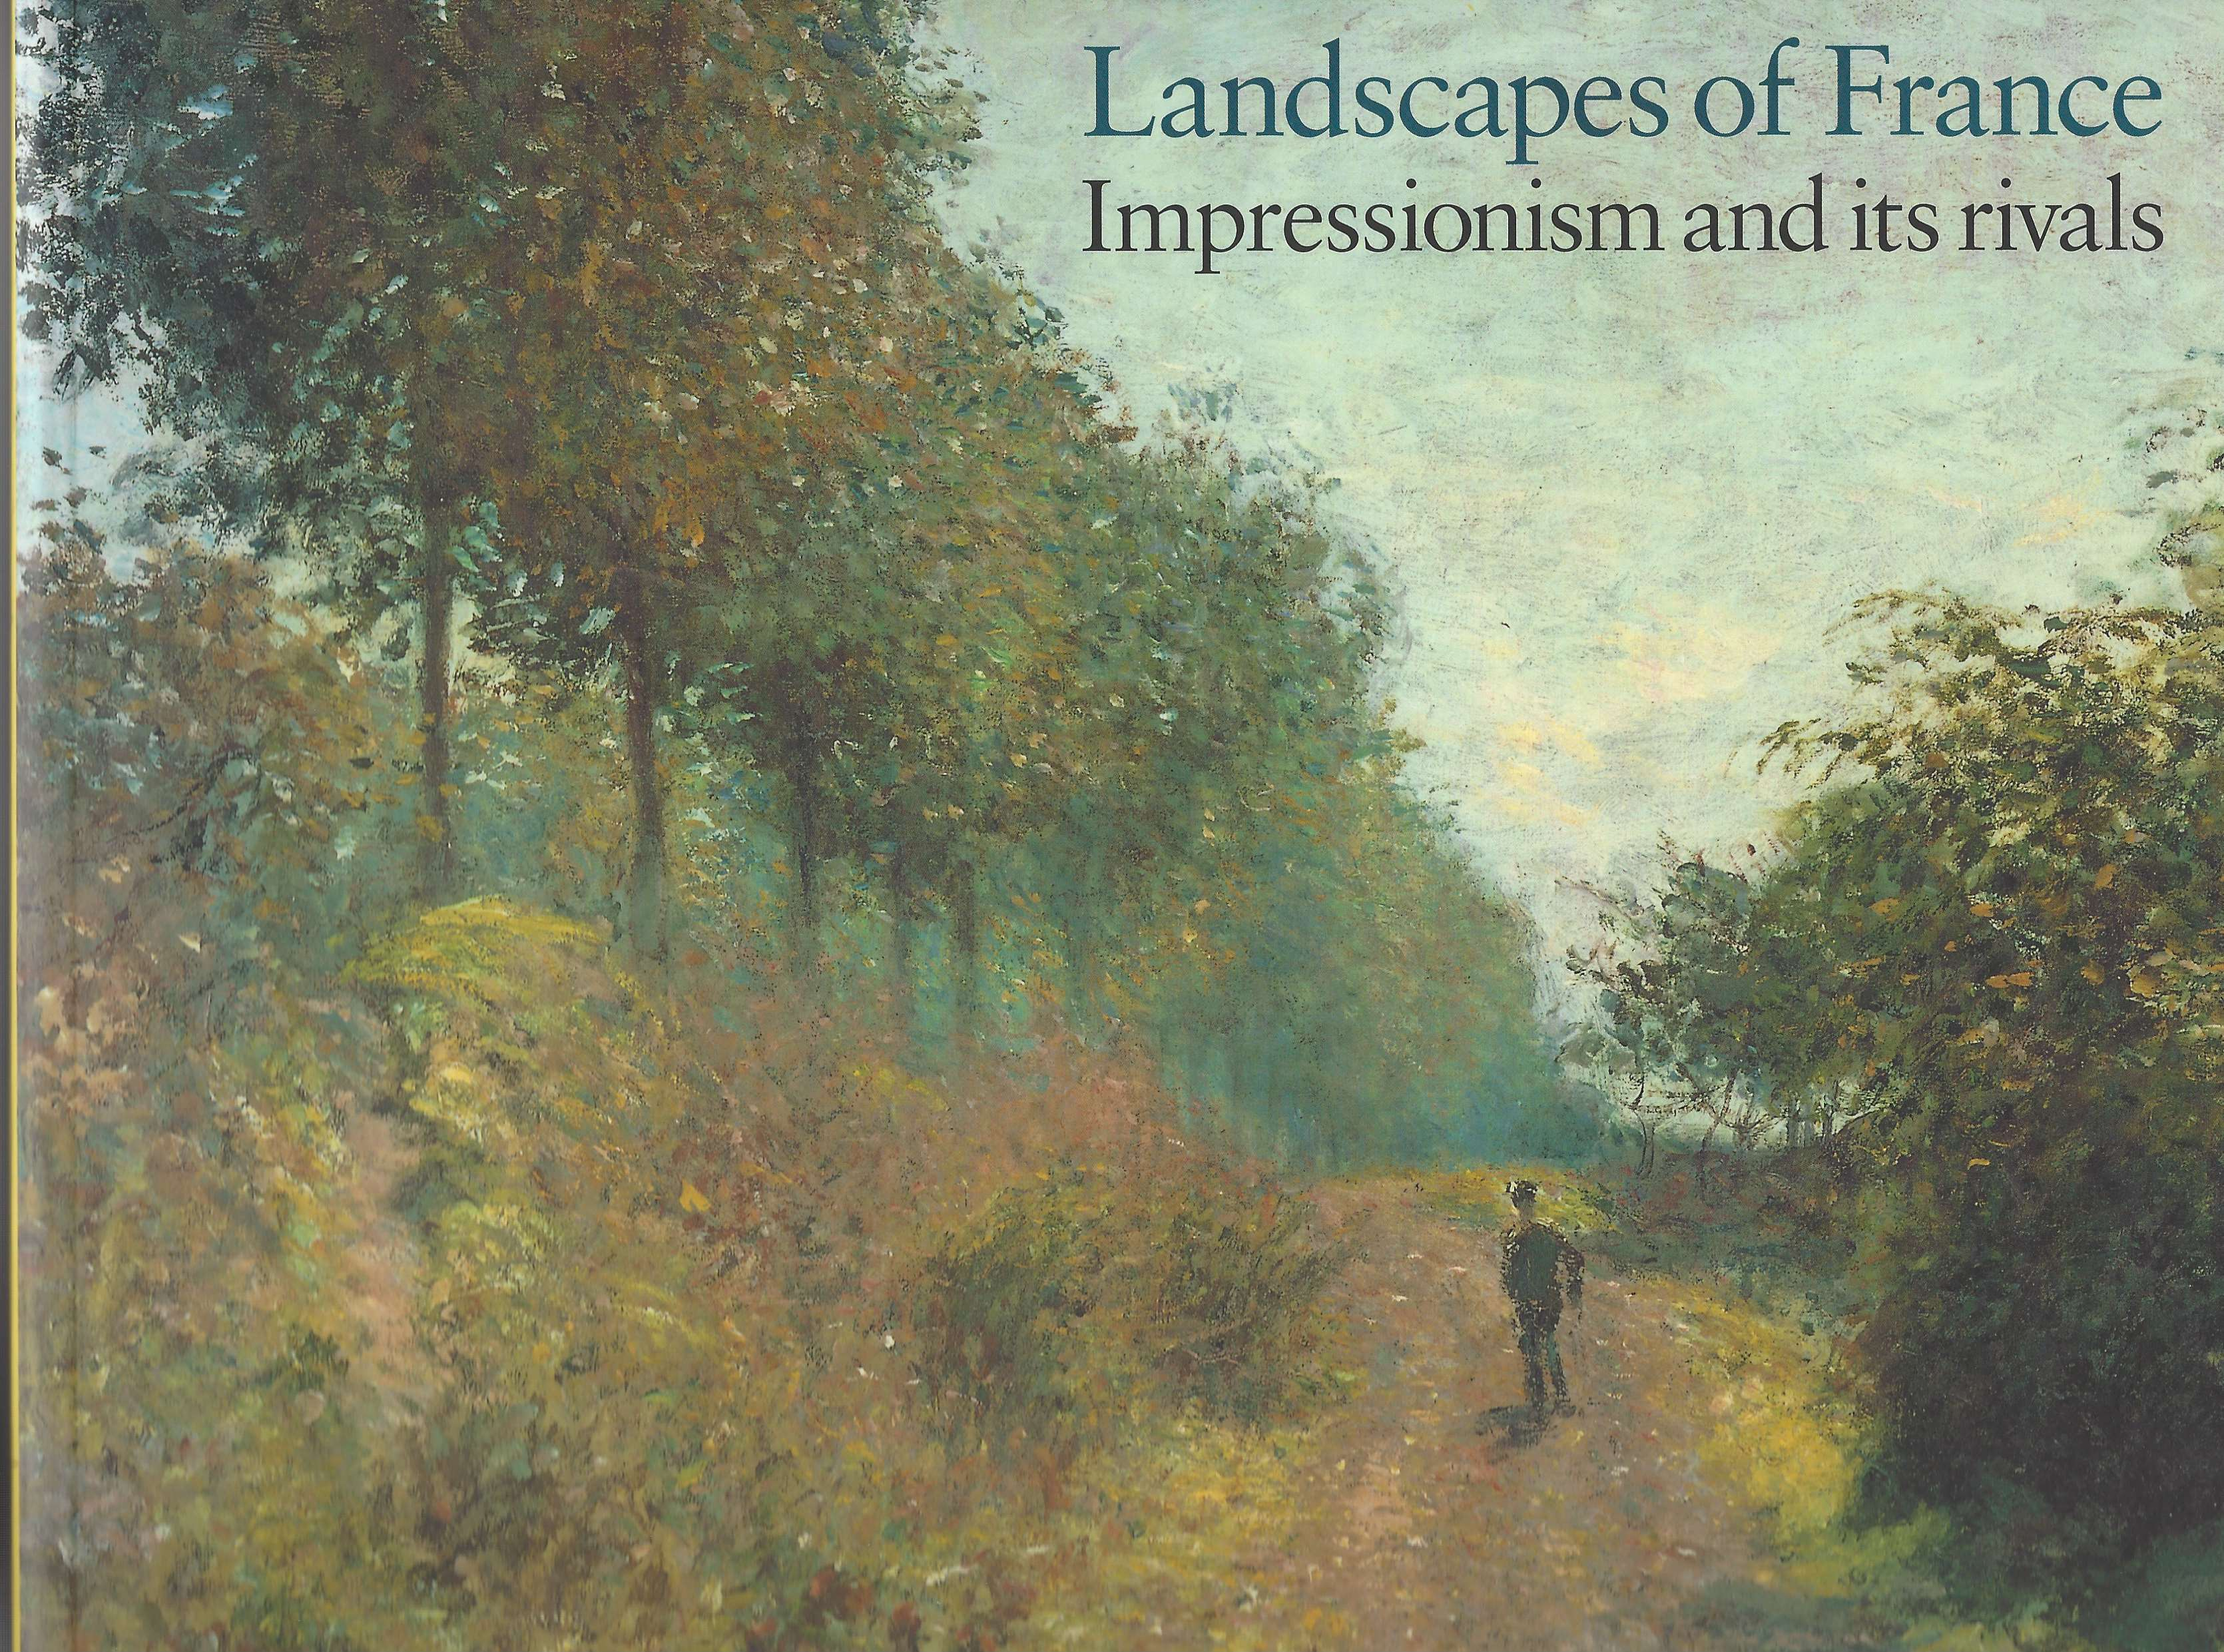 Landscapes of France: Impressionism and Its Rivals